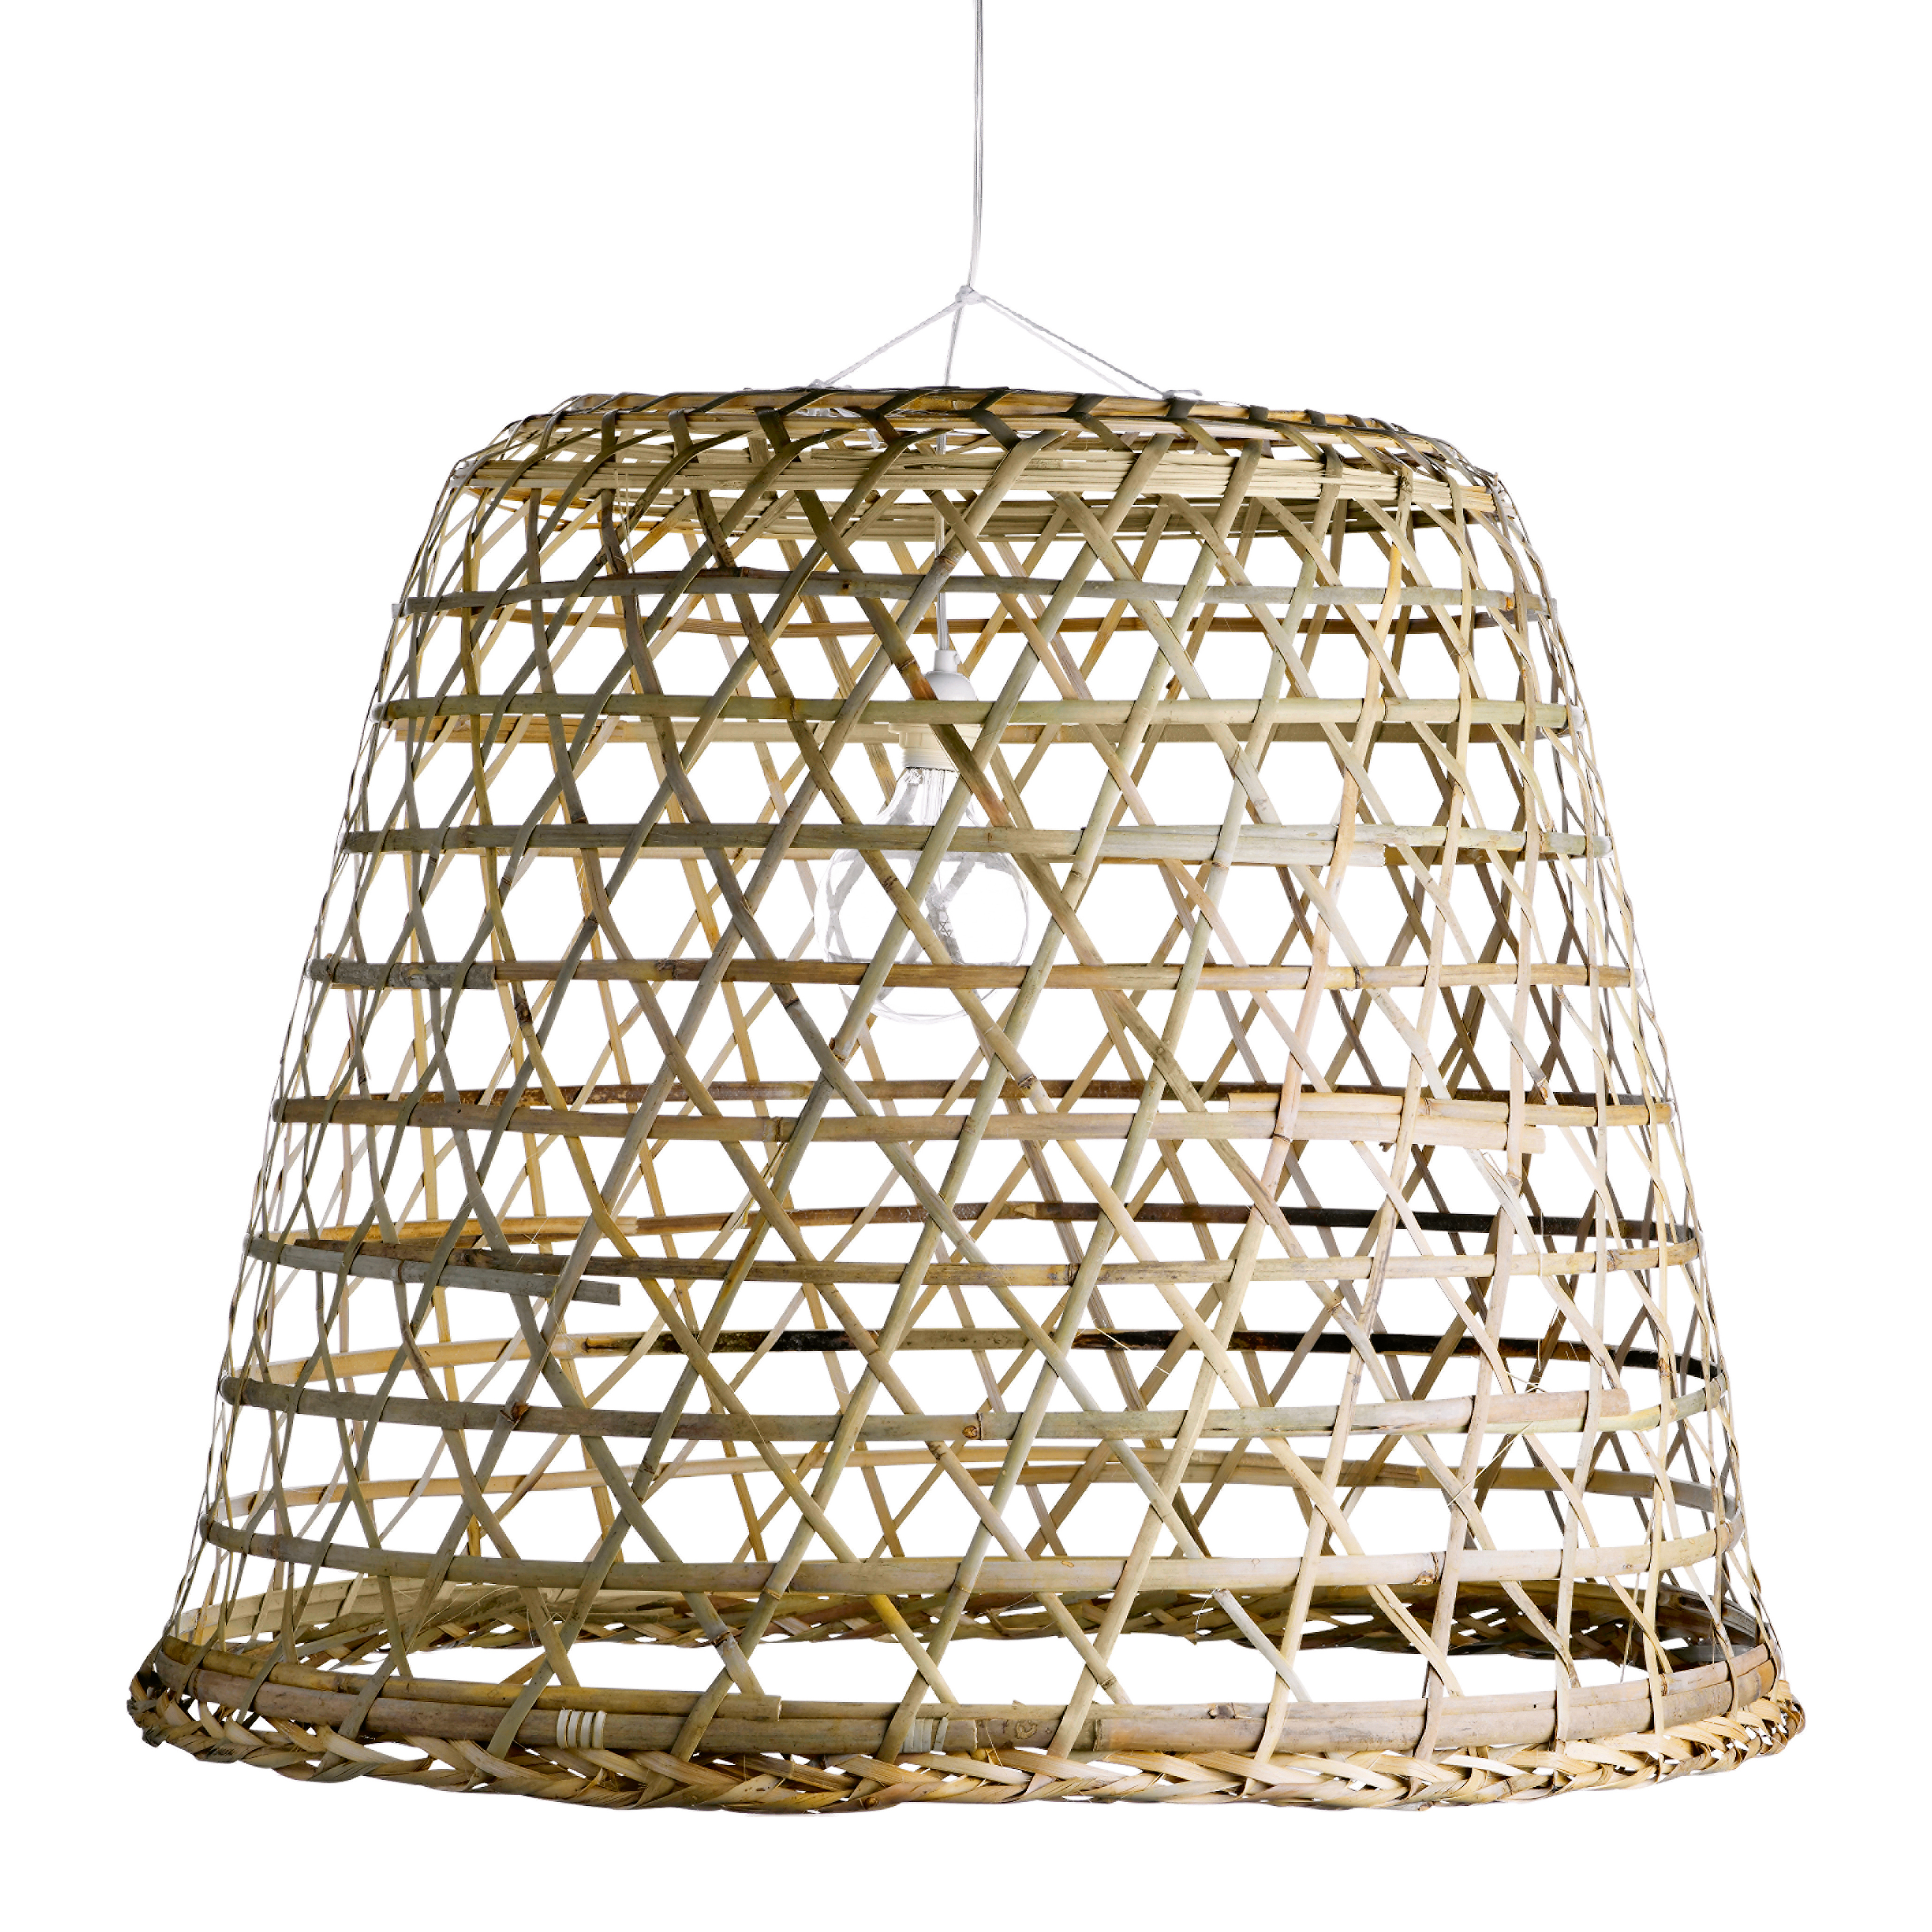 Lampshade Braided From Palm Leaves Products Tine K Home